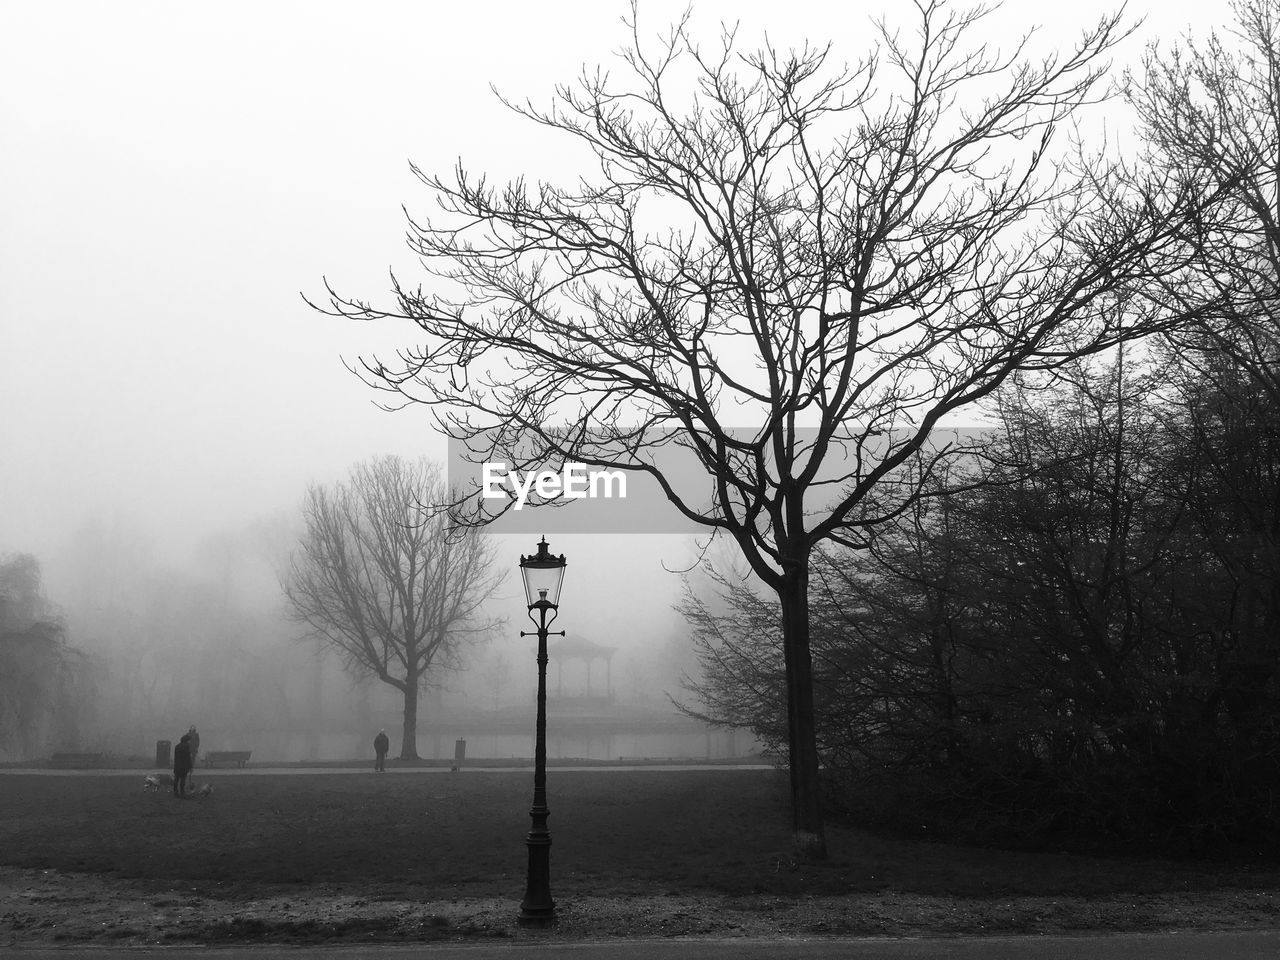 BARE TREE BY STREET AGAINST SKY DURING FOGGY WEATHER